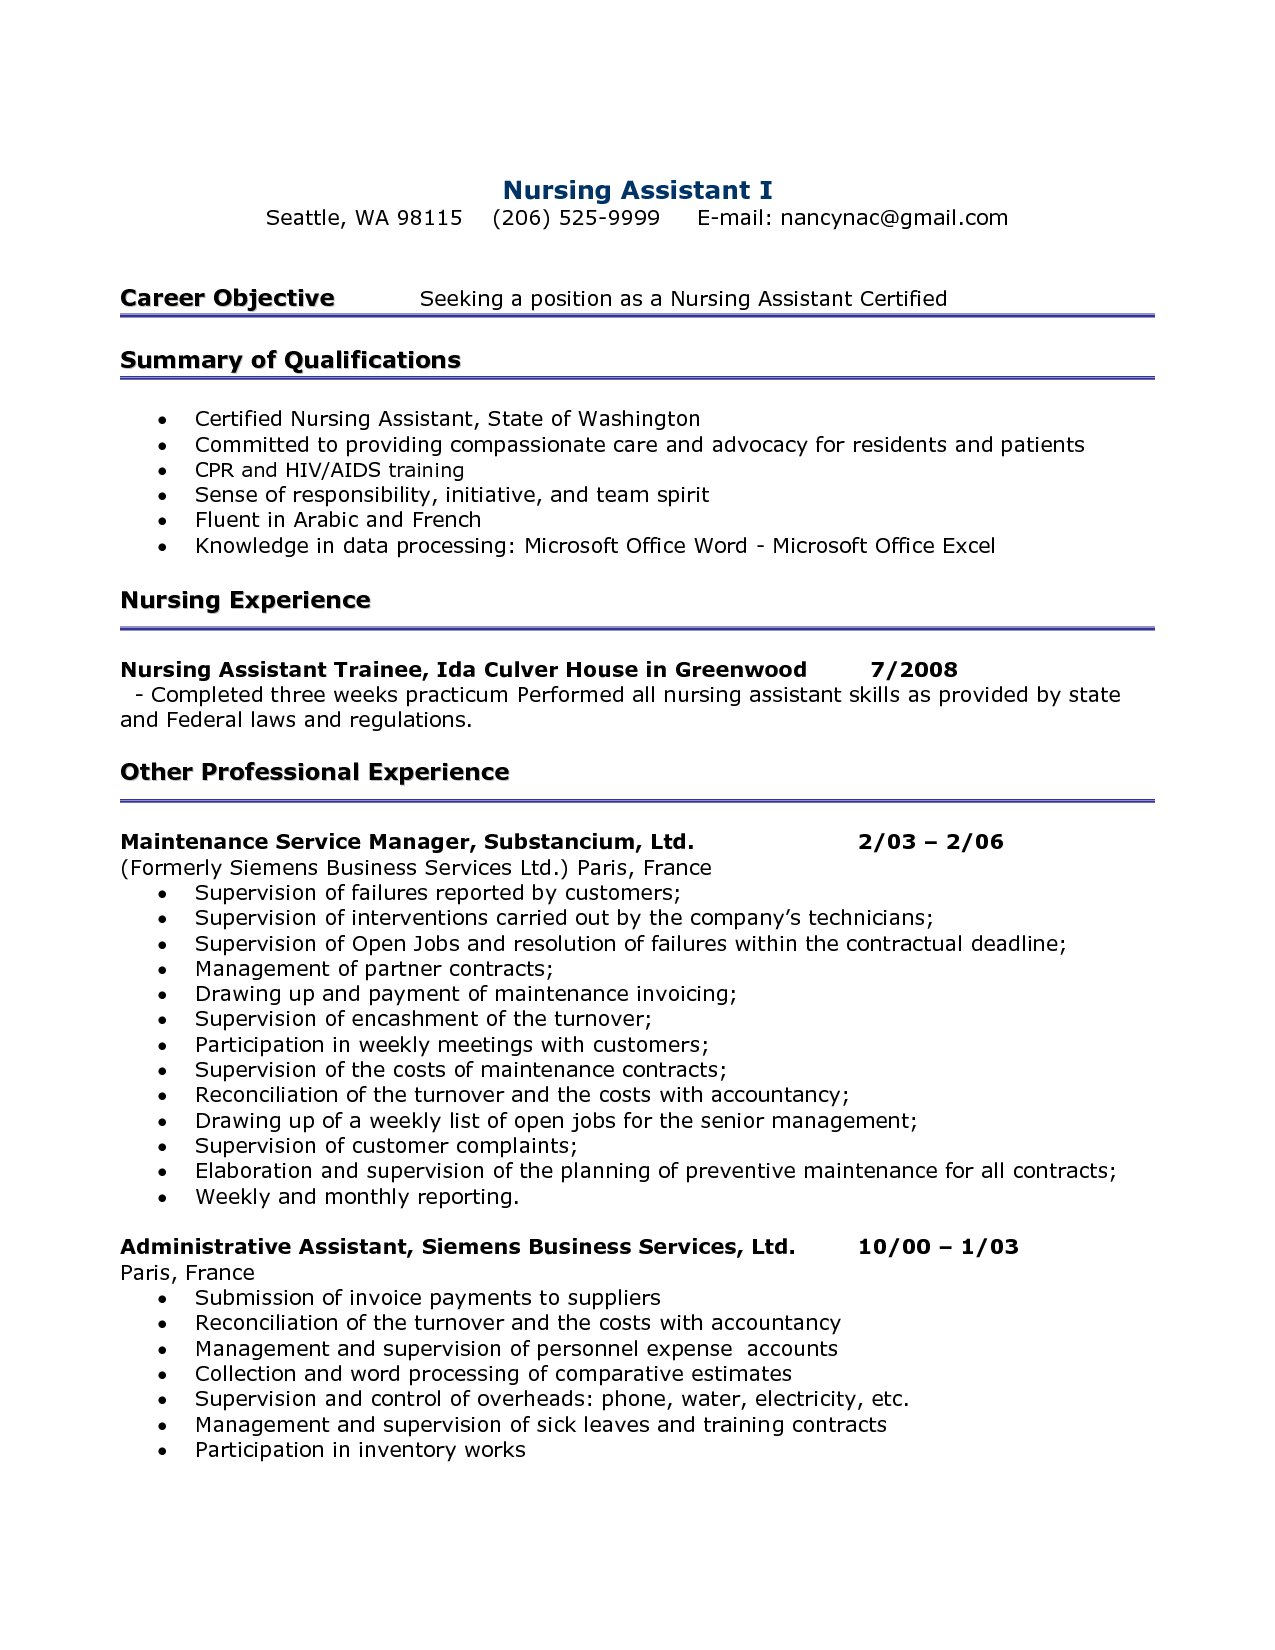 10 cna resume examples 2016